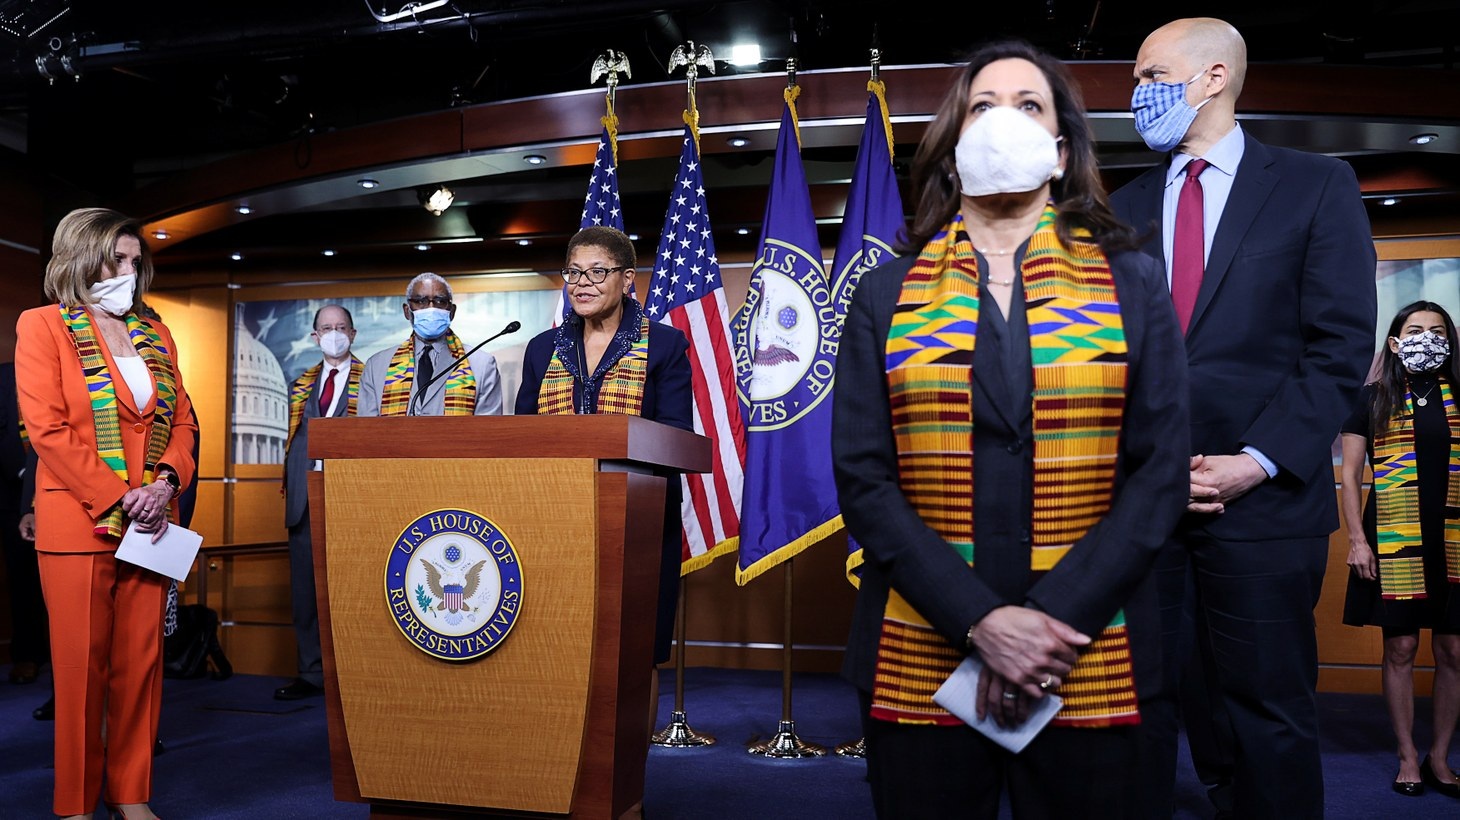 Congressional Black Caucus Chairwoman Representative Karen Bass (D-CA) addresses reporters during a news conference to unveil police reform and racial injustice legislation at the U.S. Capitol in Washington, U.S. House Speaker Nancy Pelosi (D-CA) listens with Senators Kamala Harris (D-CA) and Cory Booker (D-NJ). June 8, 2020.